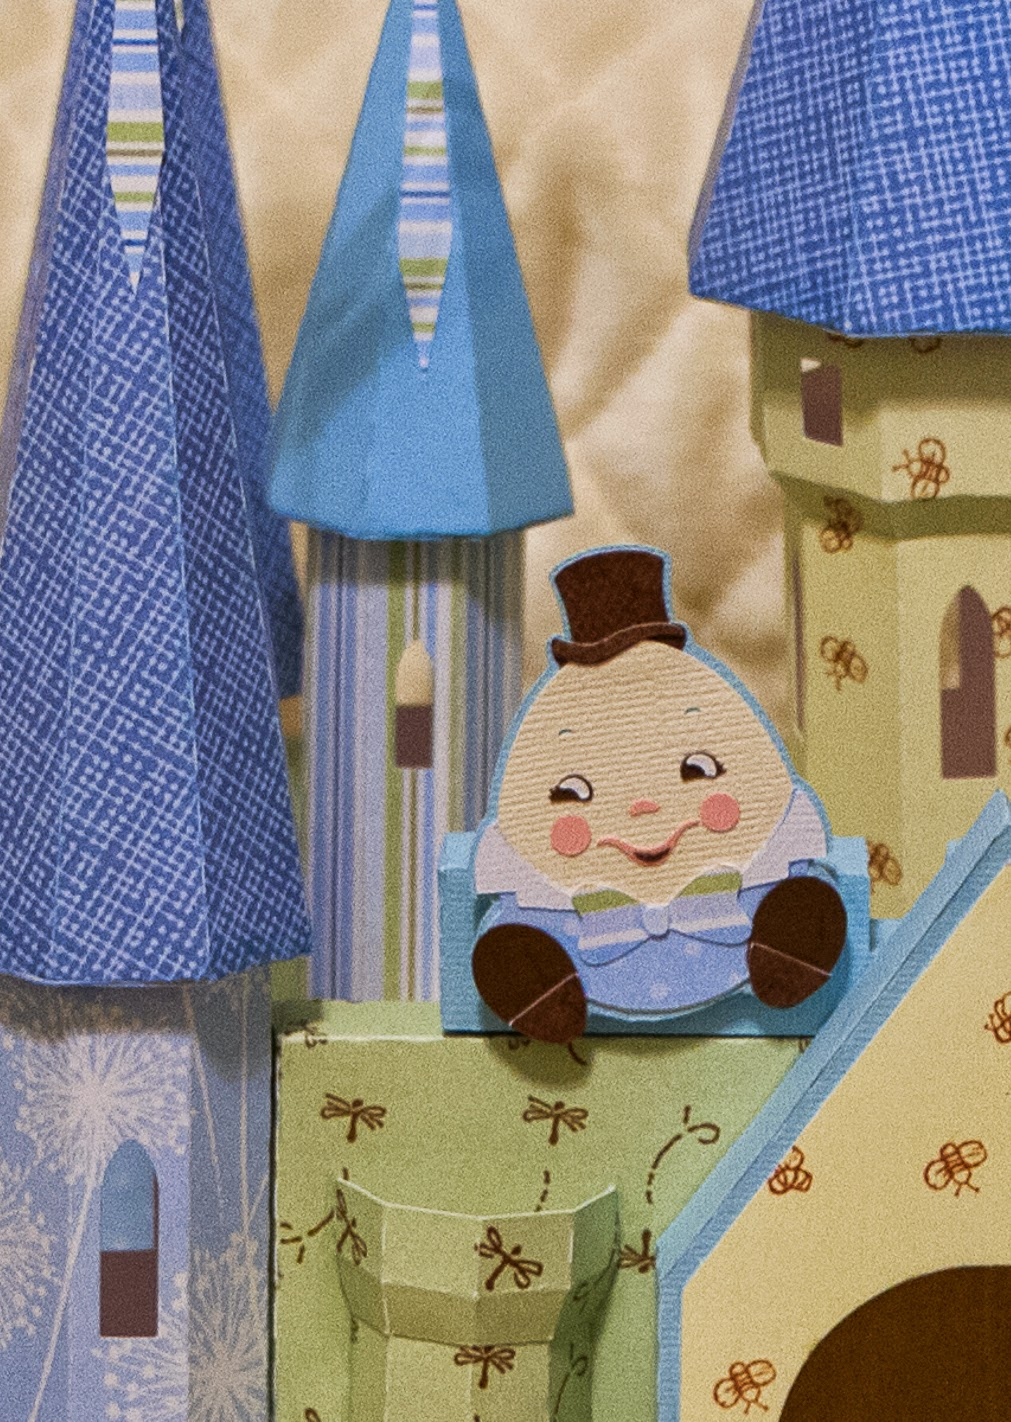 Humpty Dumpty sitting on the wall of a castle gift box